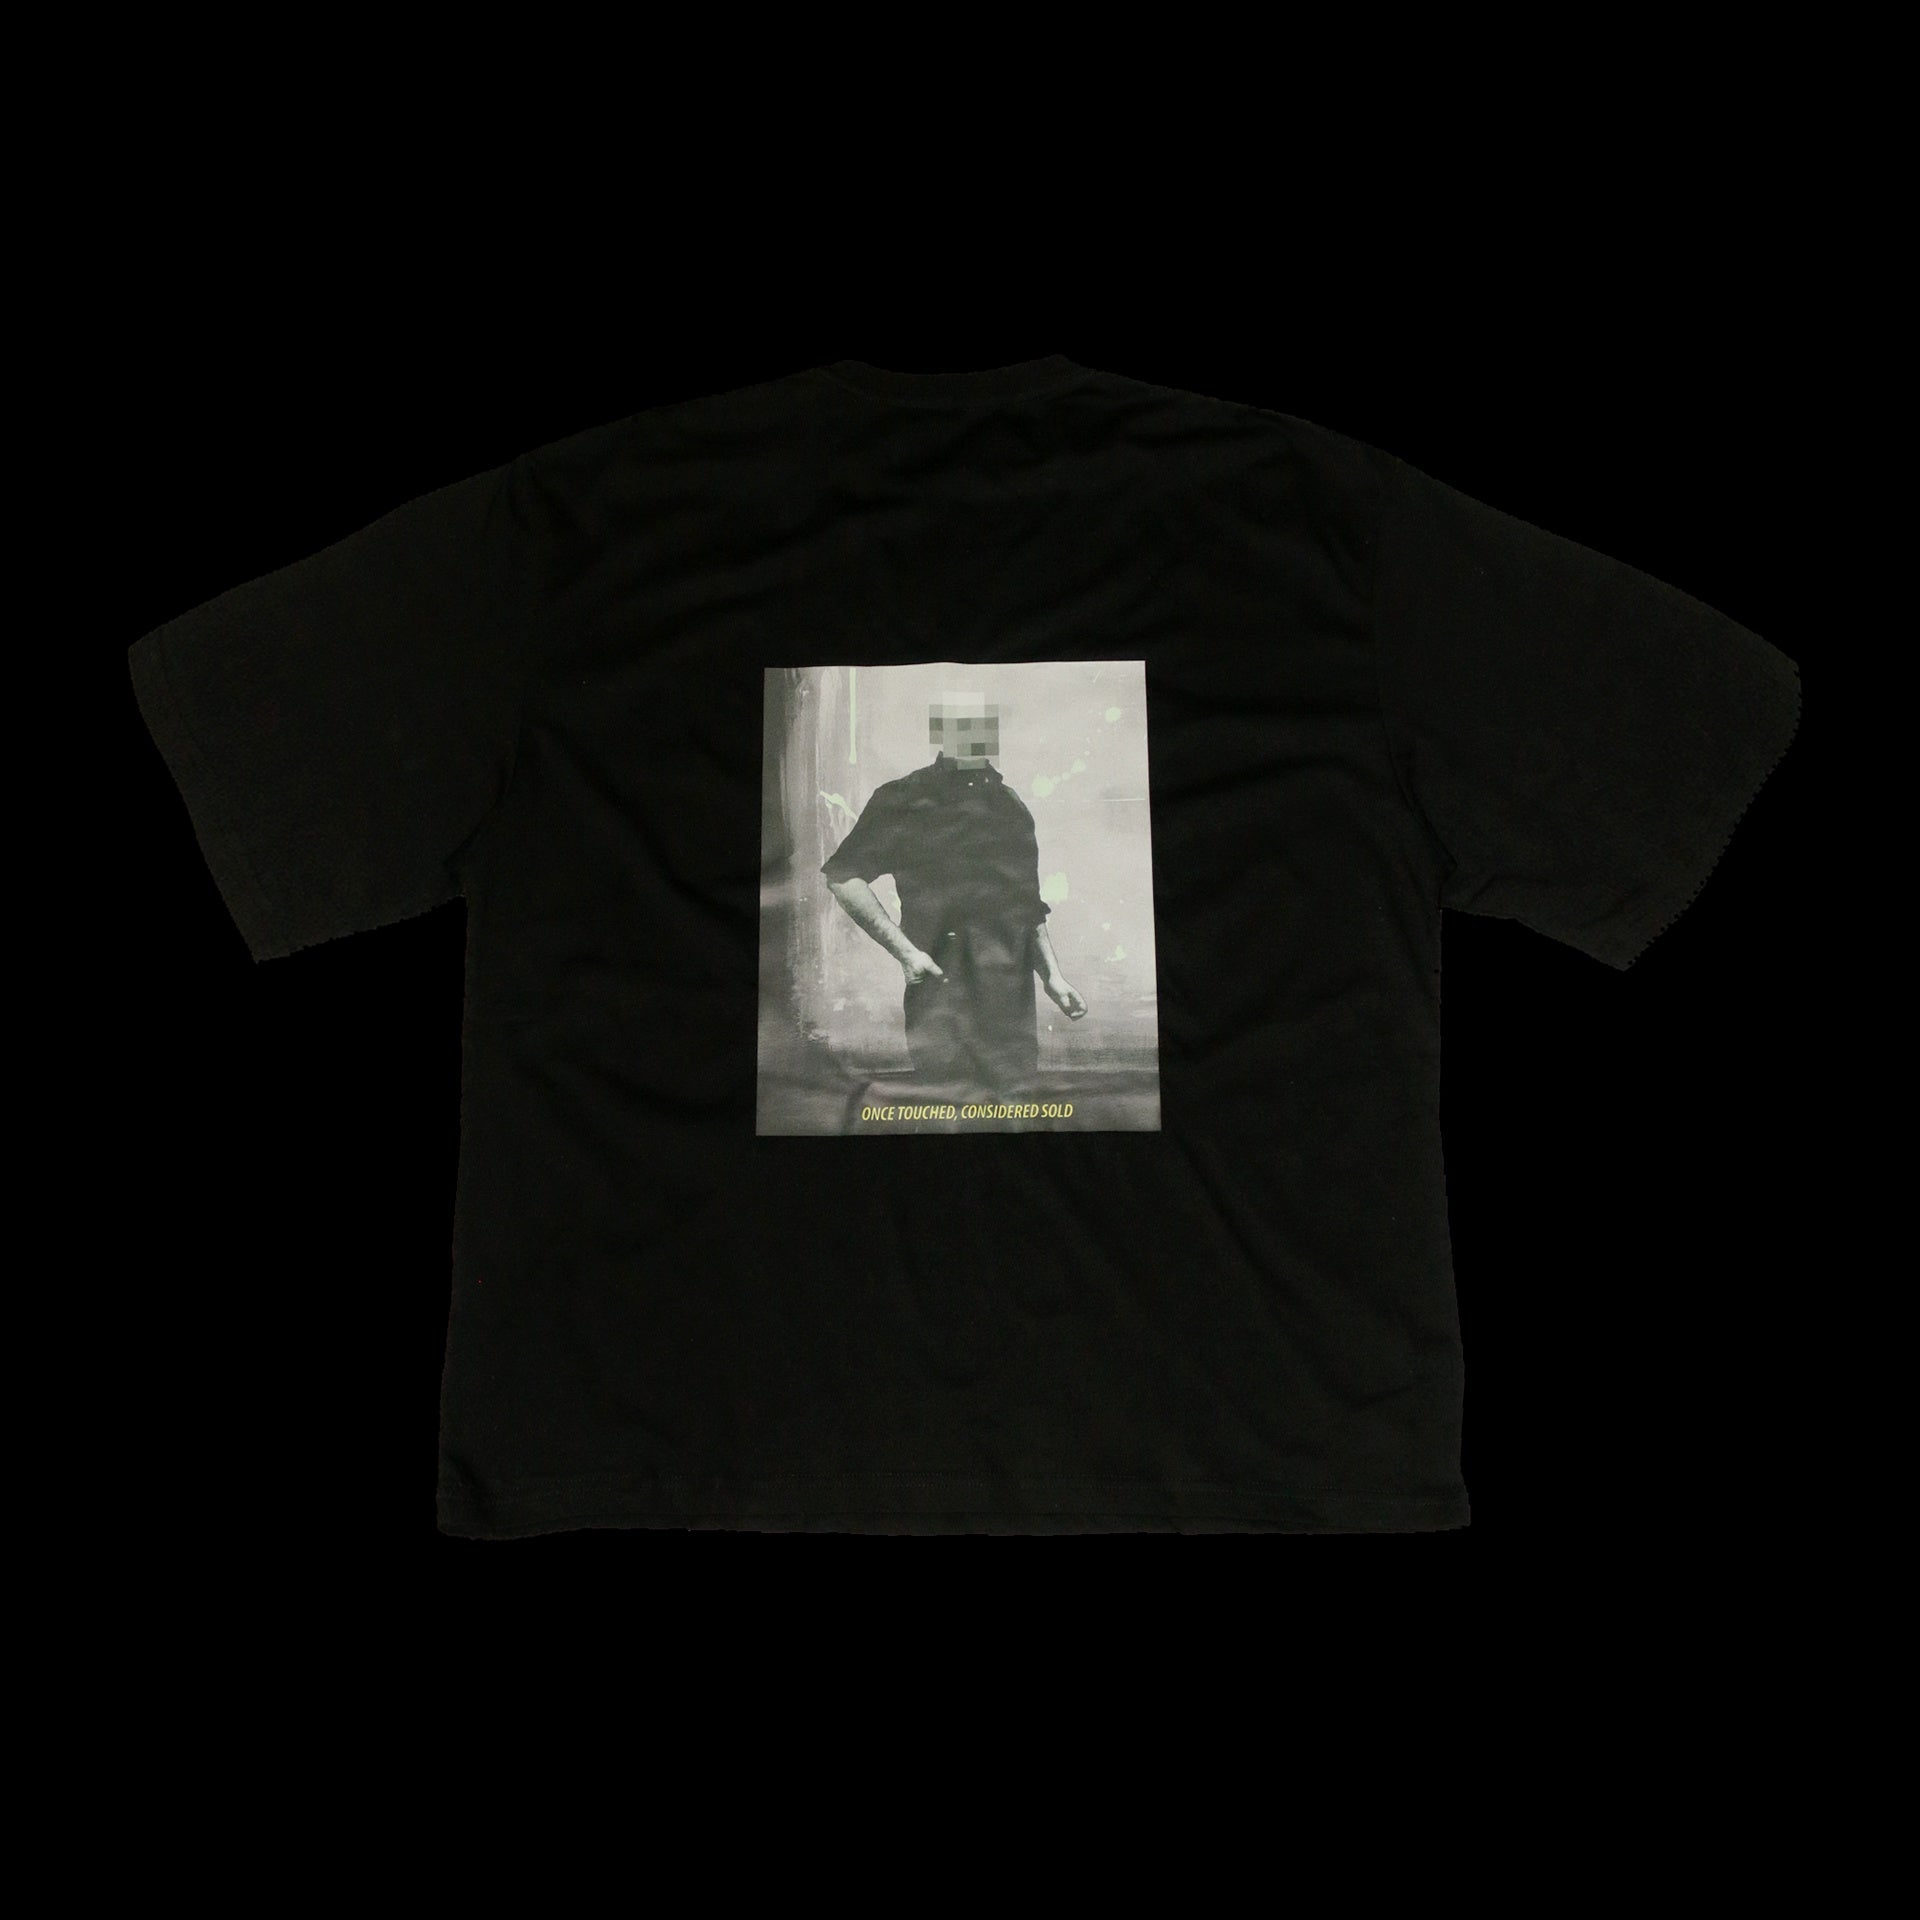 SOLD - AFAMILIARFACE PRIVATE AUCTION OVERSIZED T-SHIRT (Black)